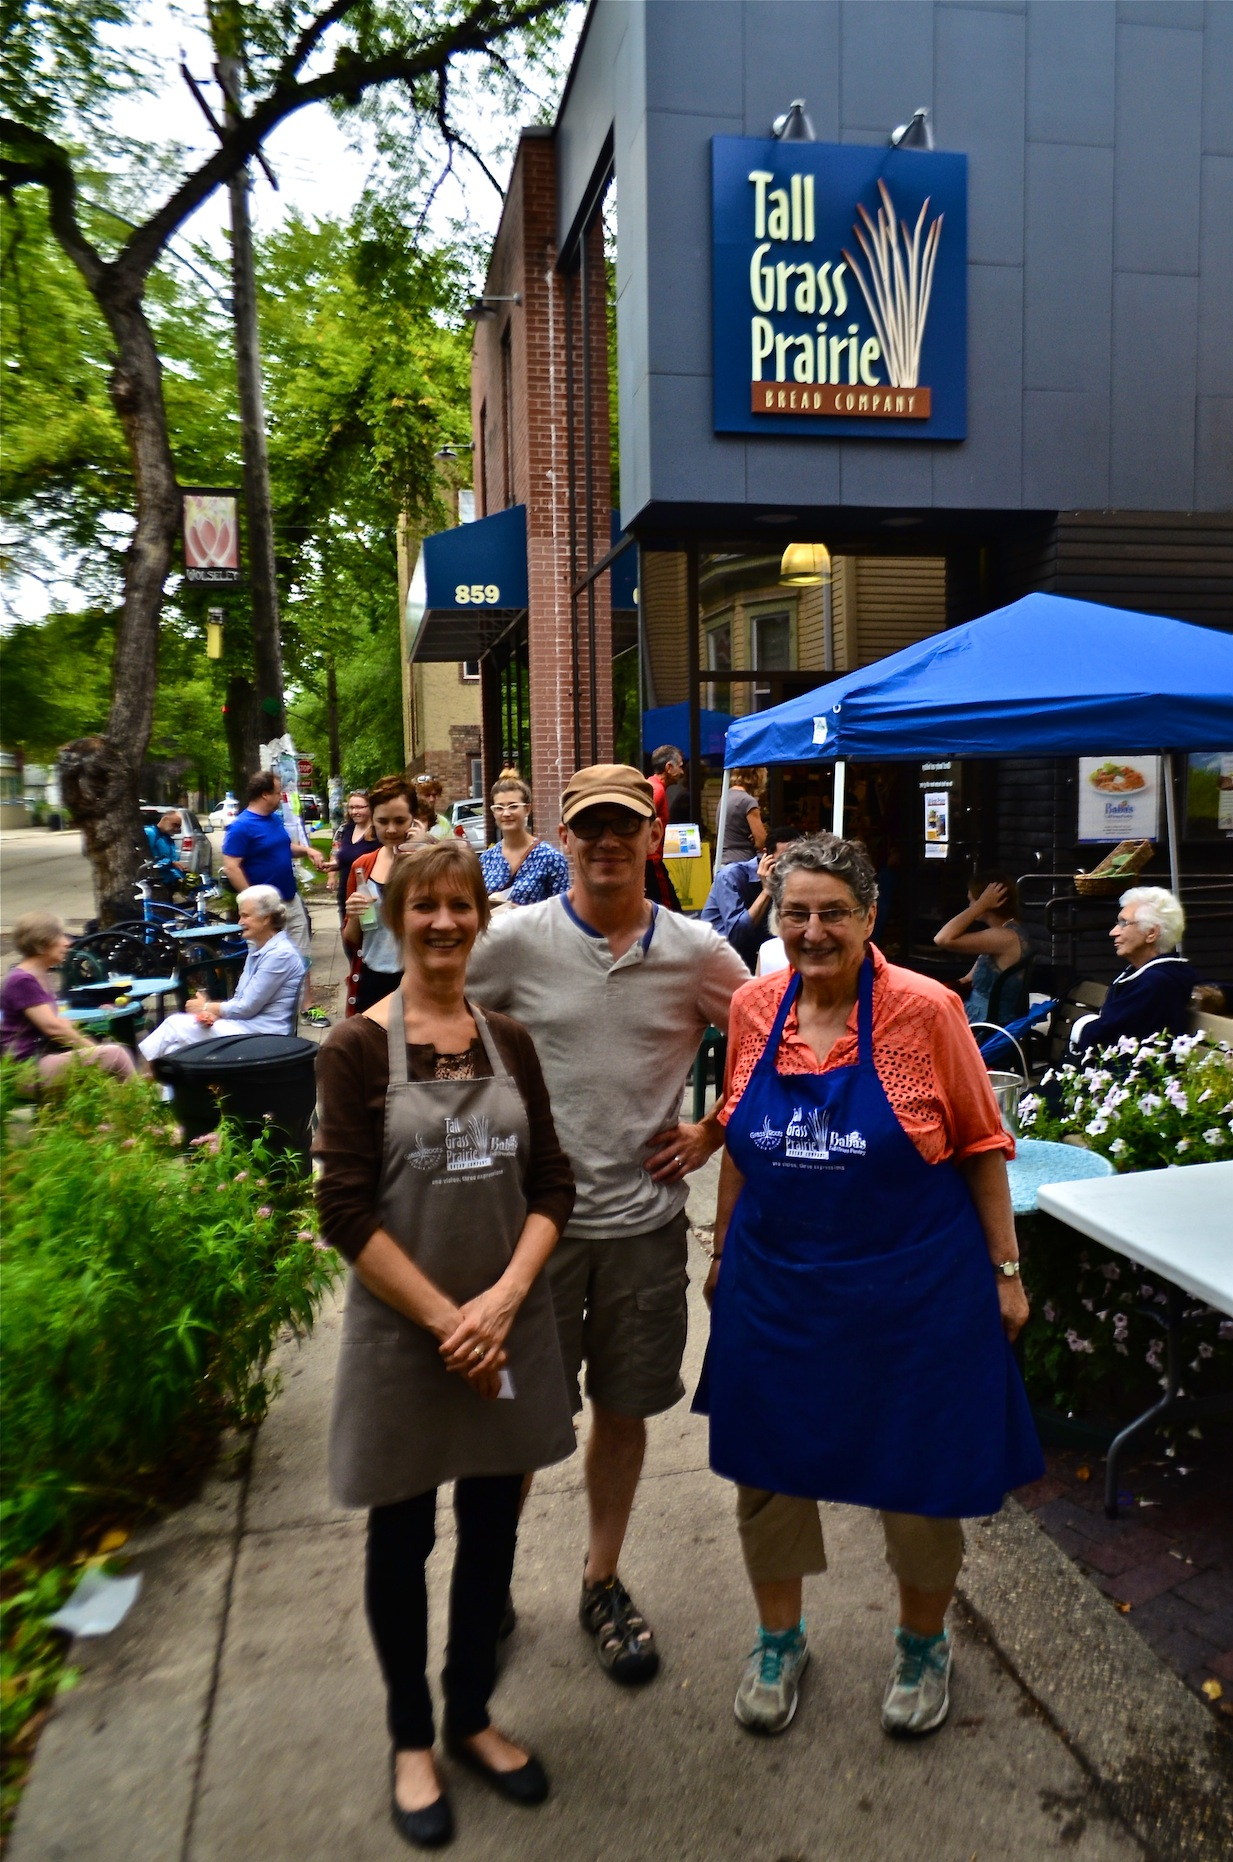 Owners Kathy Bartman, Louic Perrot and Tabitha Langen